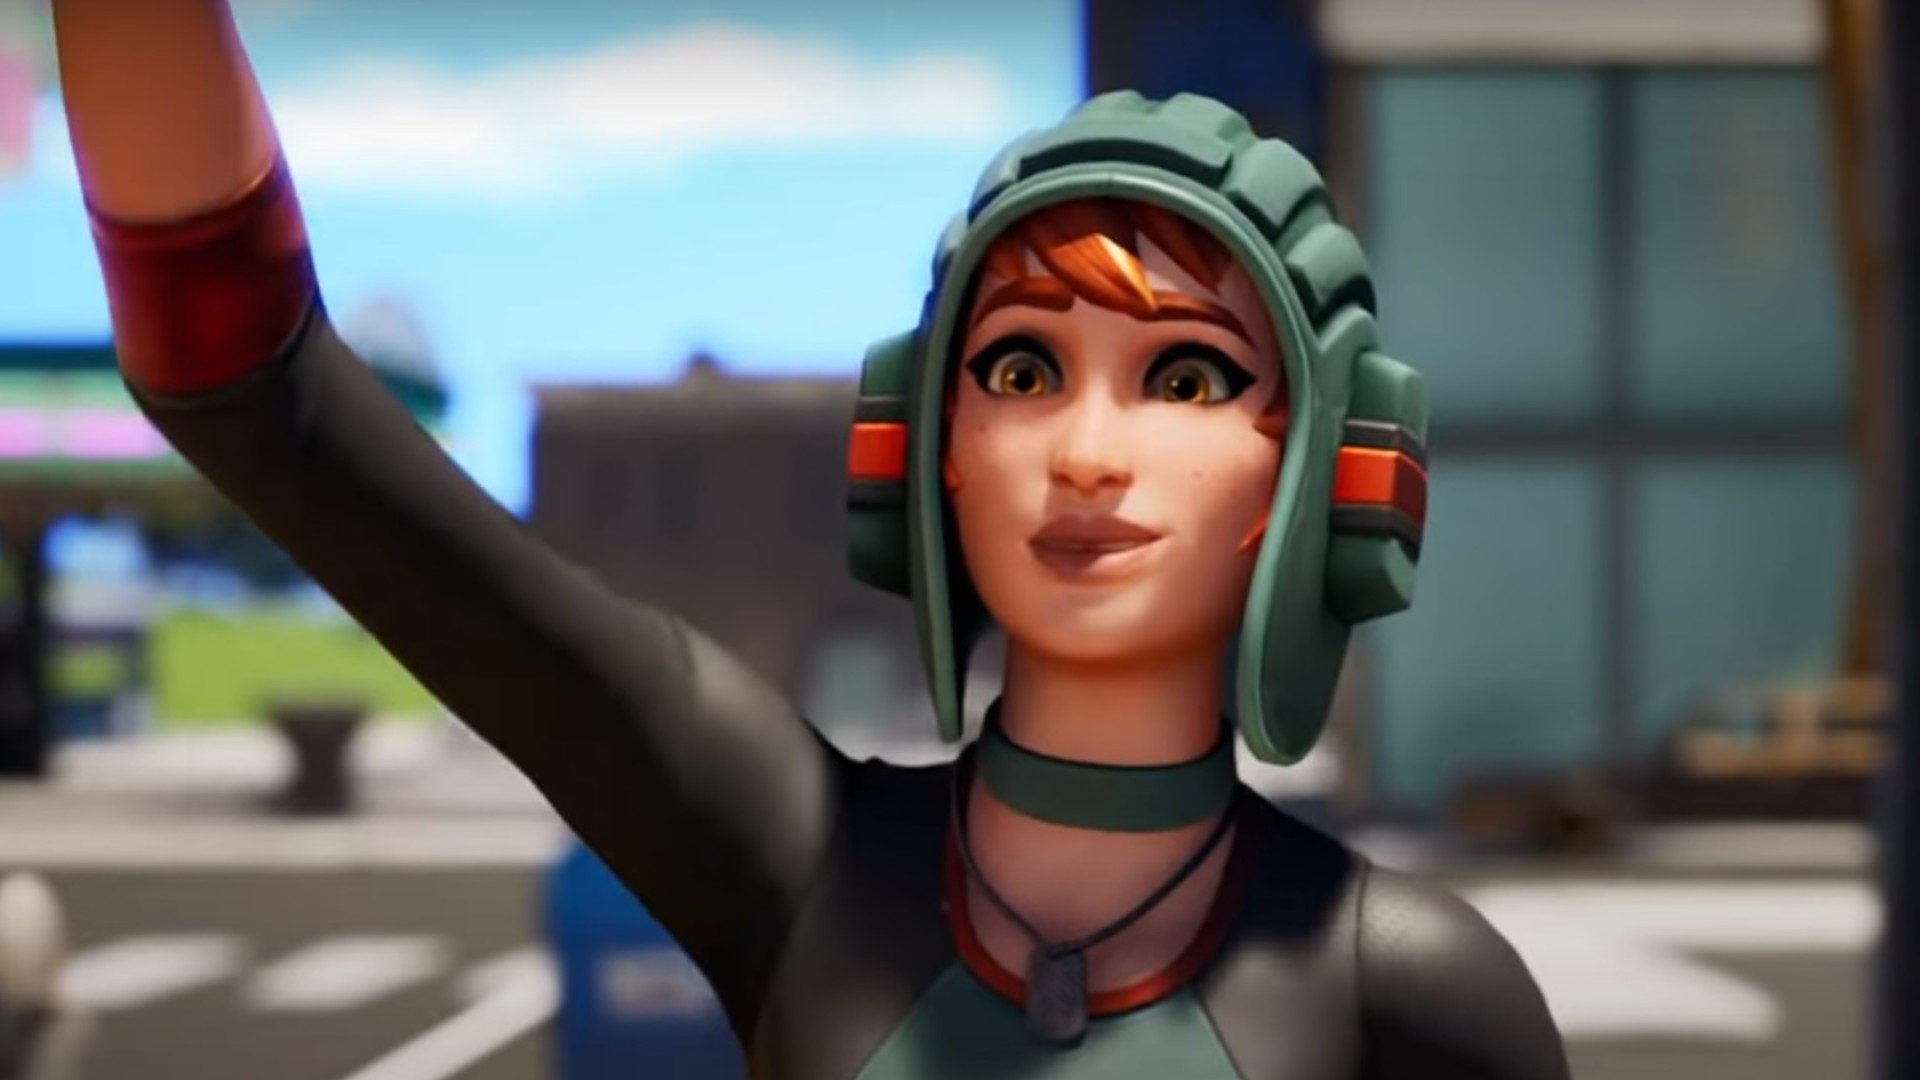 Judge says Epic was 'not honest' when it bypassed Apple's payment system in Fortnite